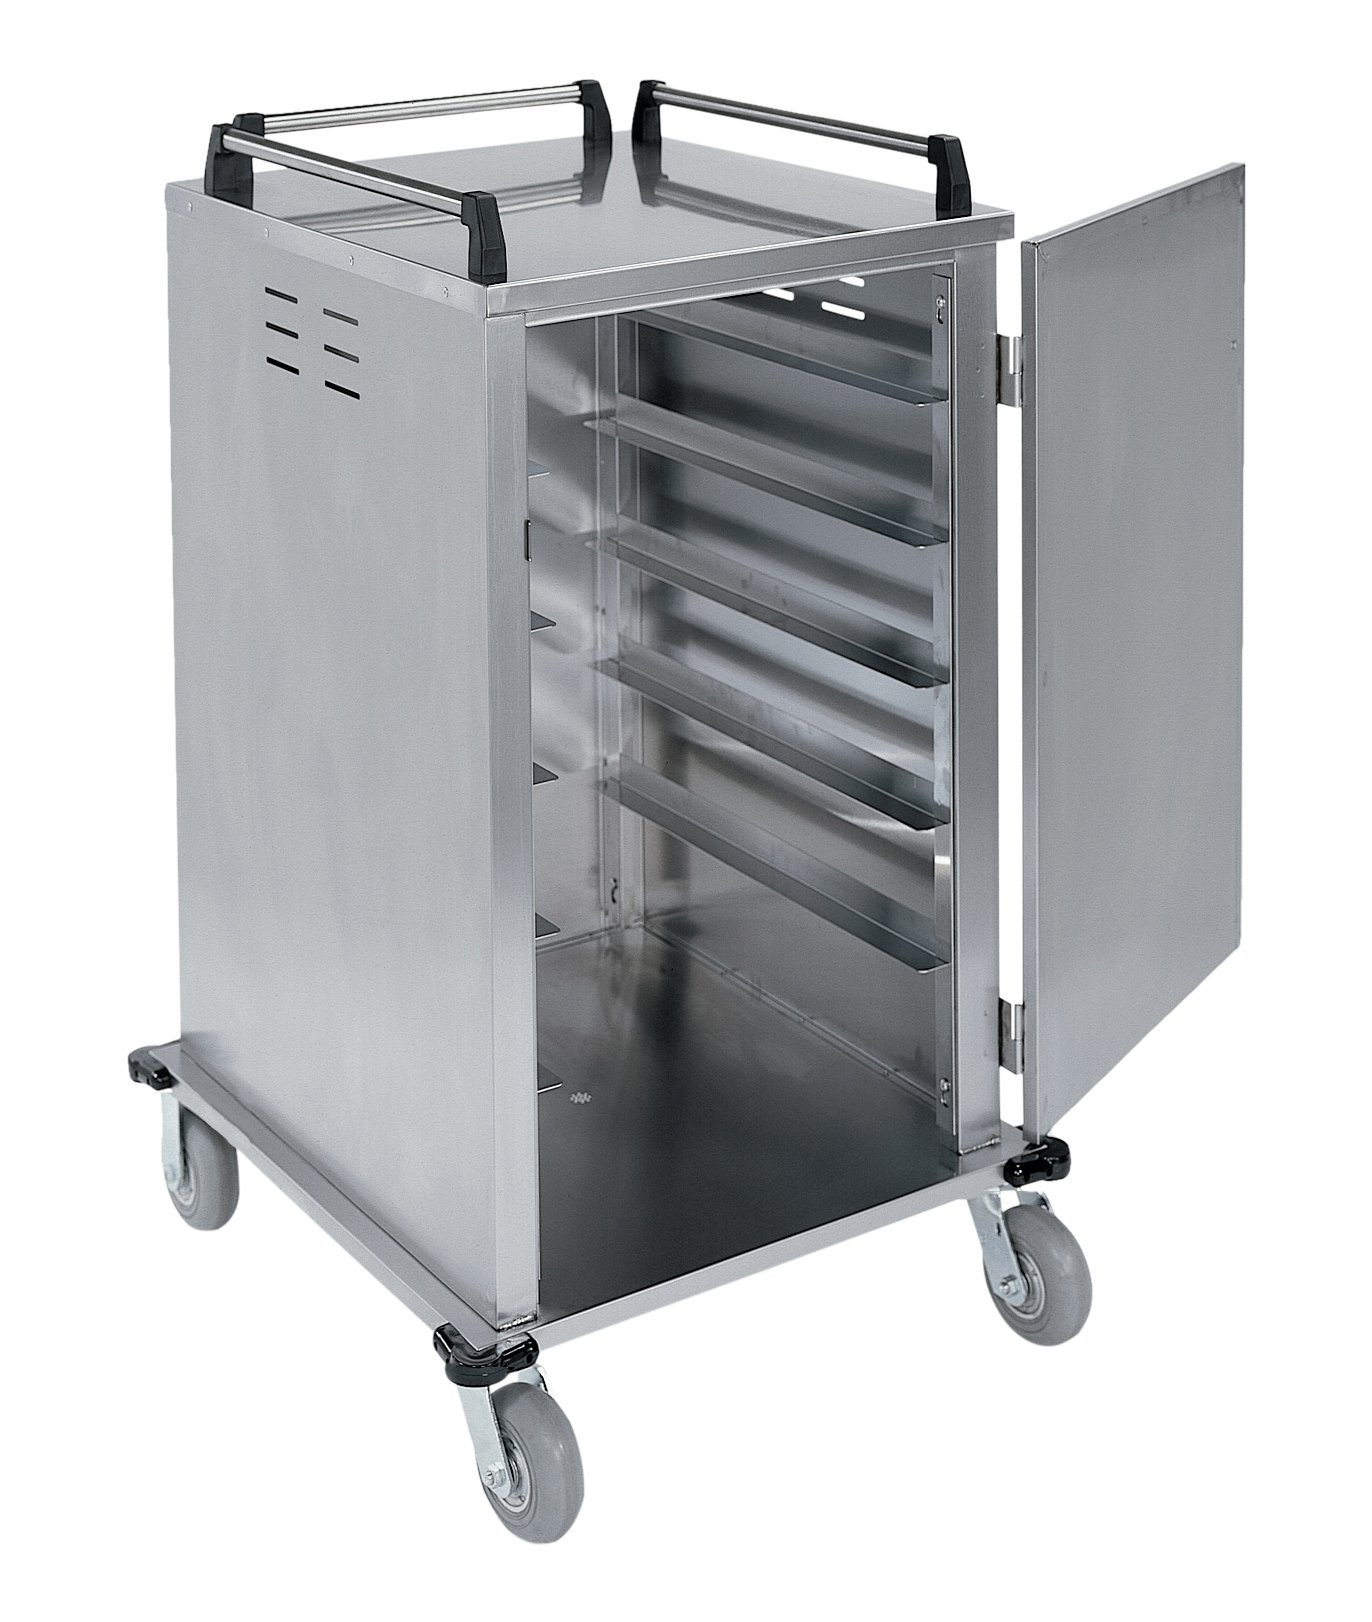 Lakeside 5510, Elite Series, Enclosed Room Service, Tray Delivery Cart; Stainless Steel, 12 Tray Capacity, 32-1/4'' x 36-3/4'' x 48-3/4'' by Lakeside (Image #2)